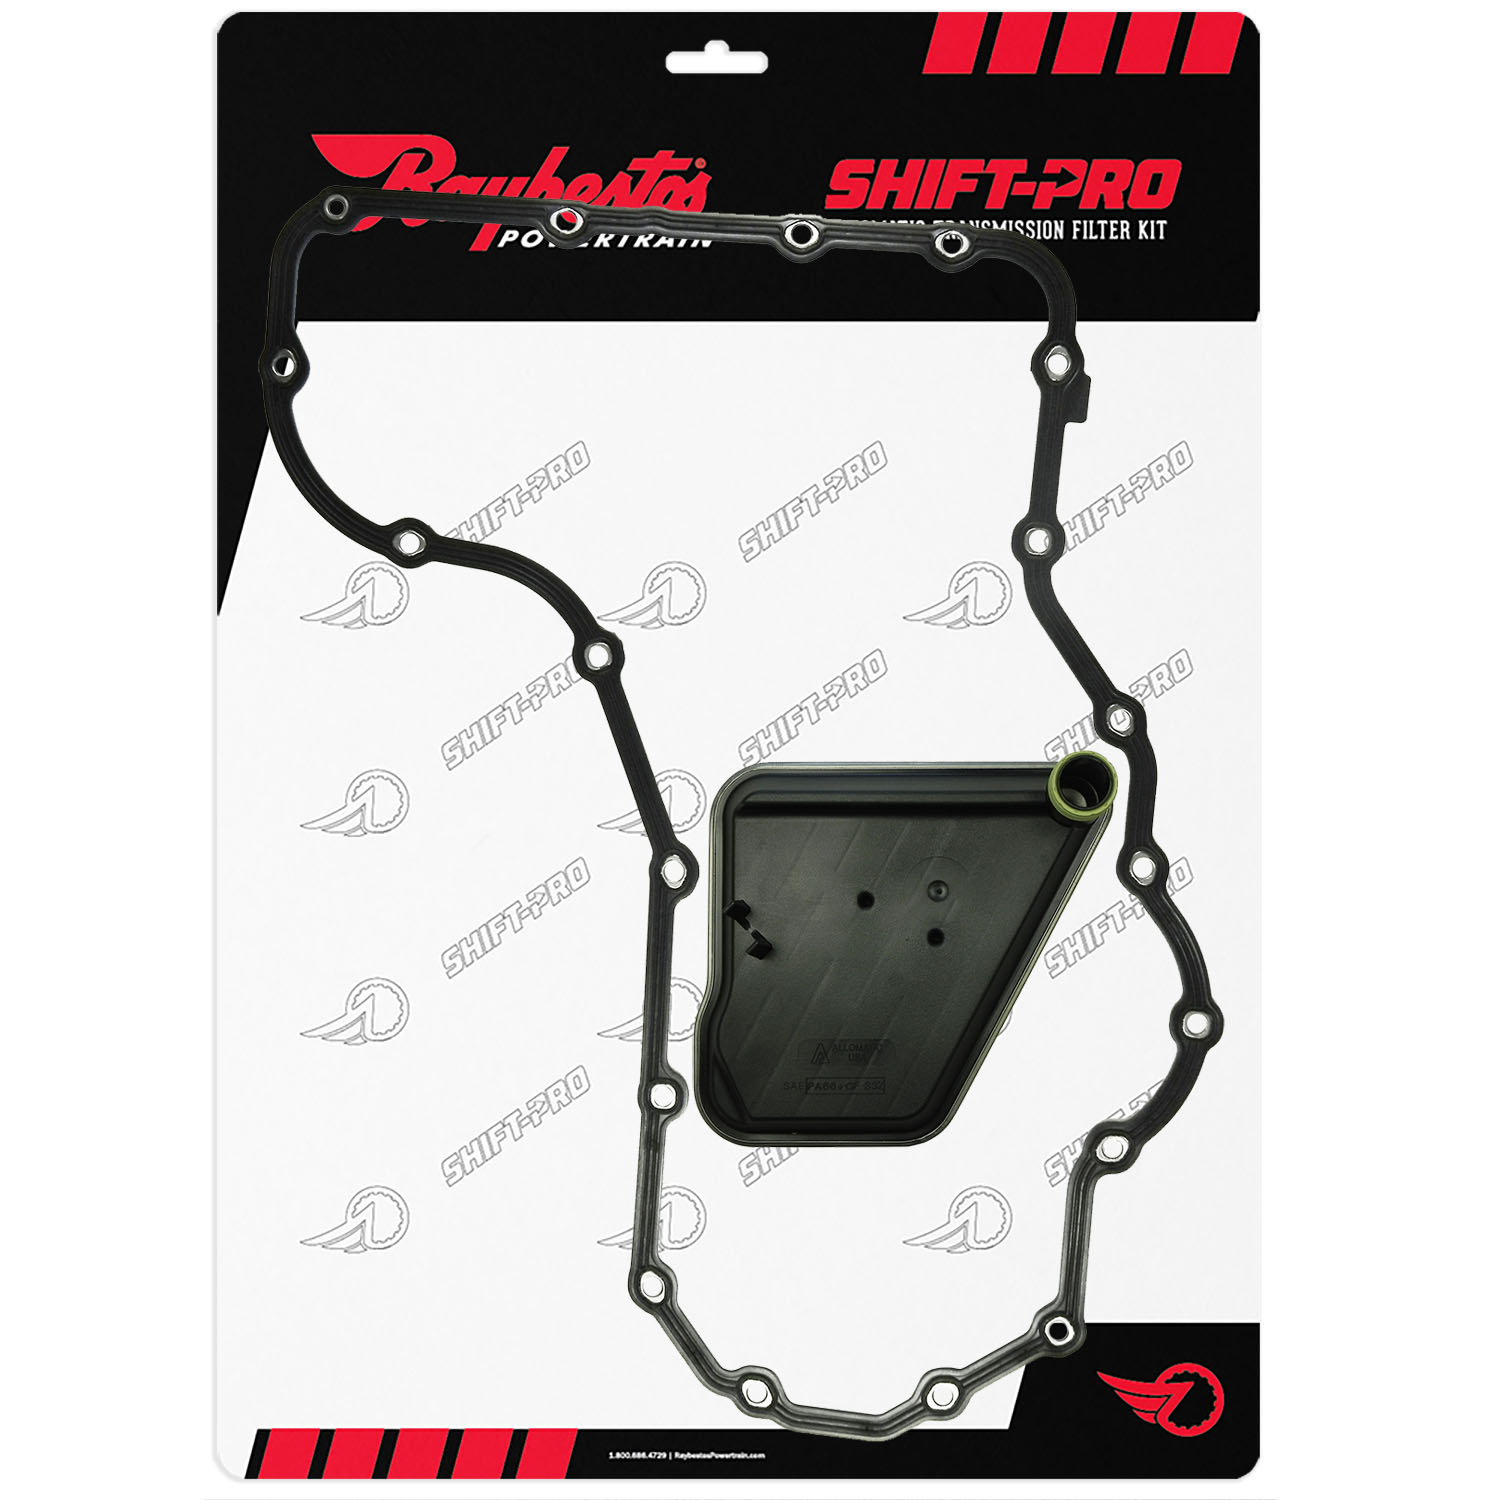 AX4S SHO Transmission Filter Kit